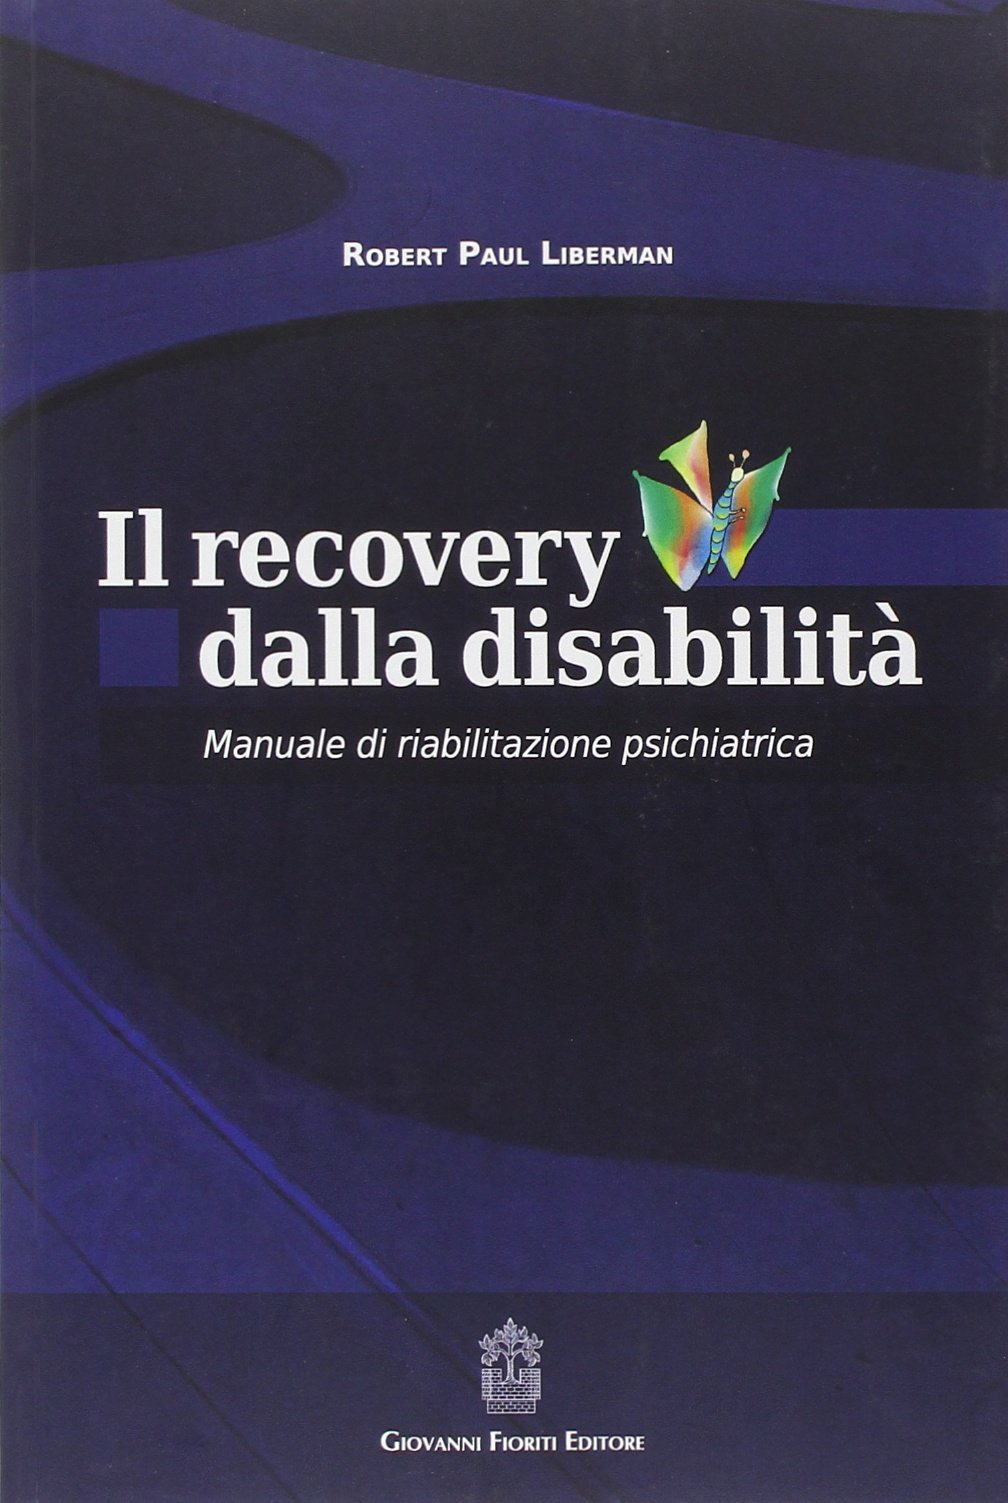 Il recovery dalla disabilità. Manuale di riabilitazione psichiatrica:  Amazon.it: Robert P. Liberman, A. Svettini: Libri